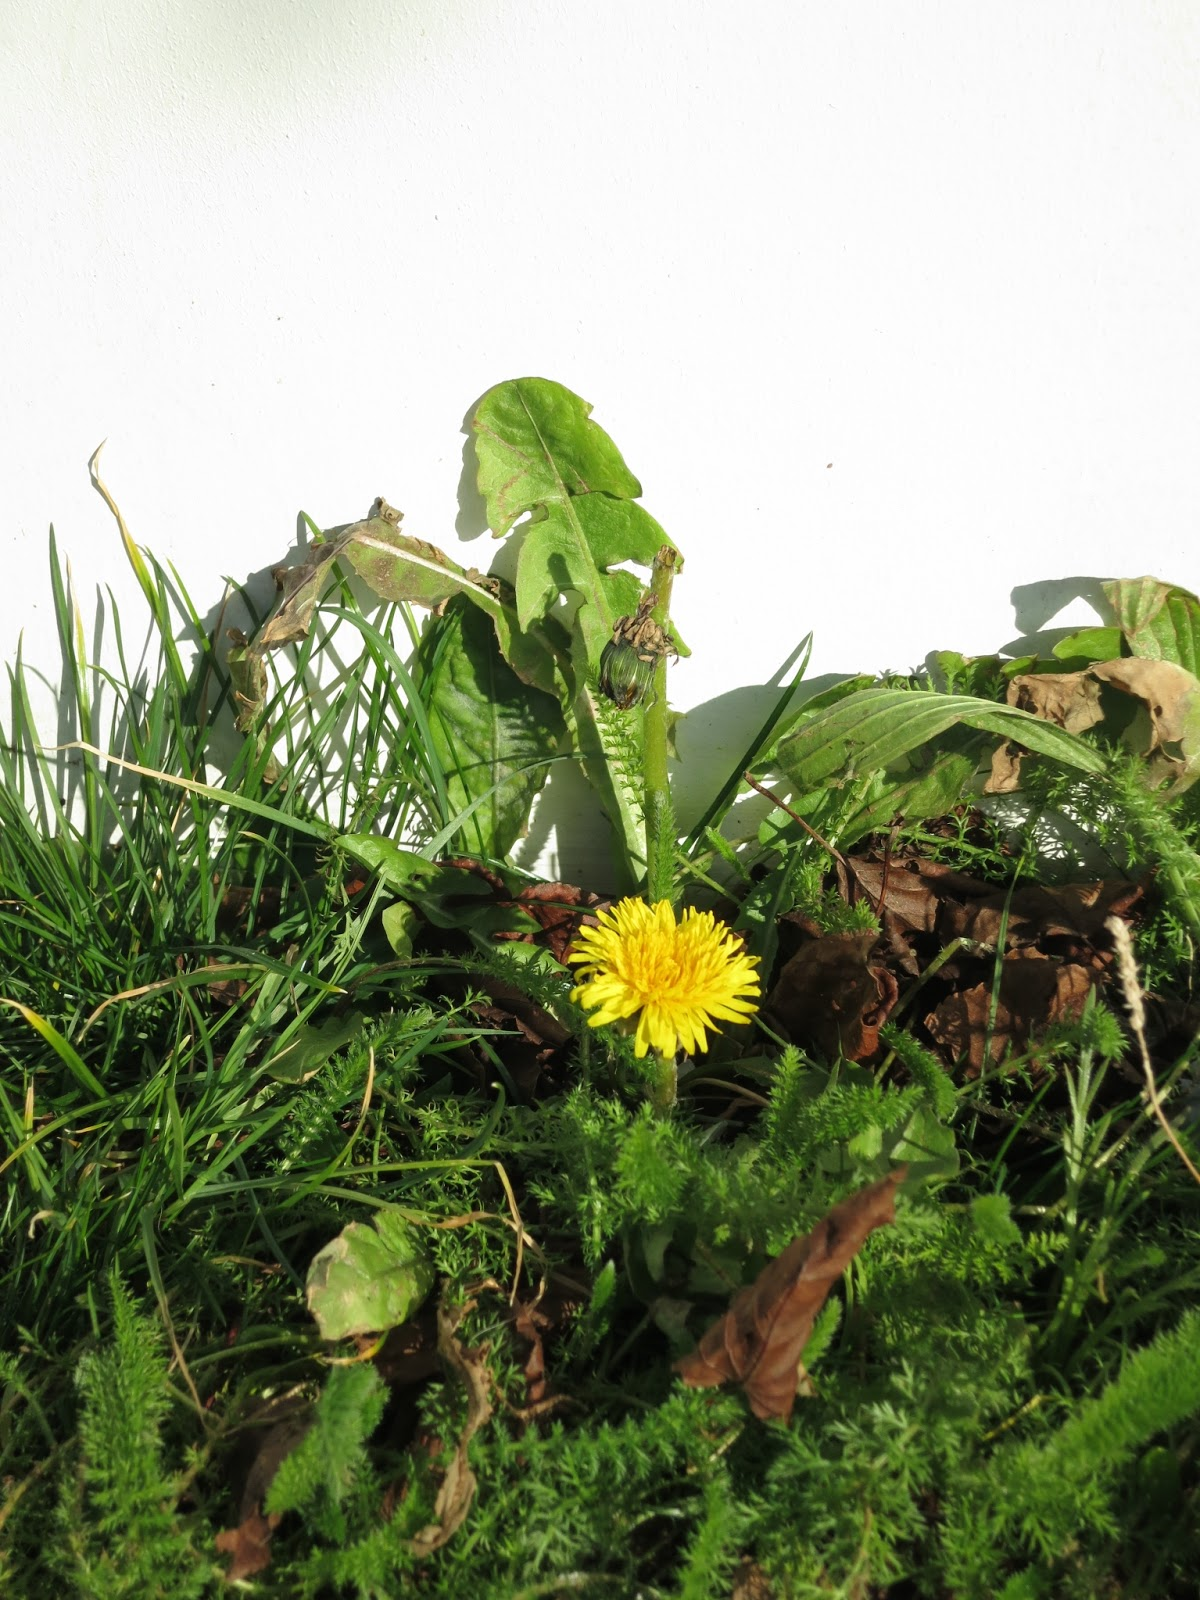 Dandelion, grass and other plants along the hoarding.